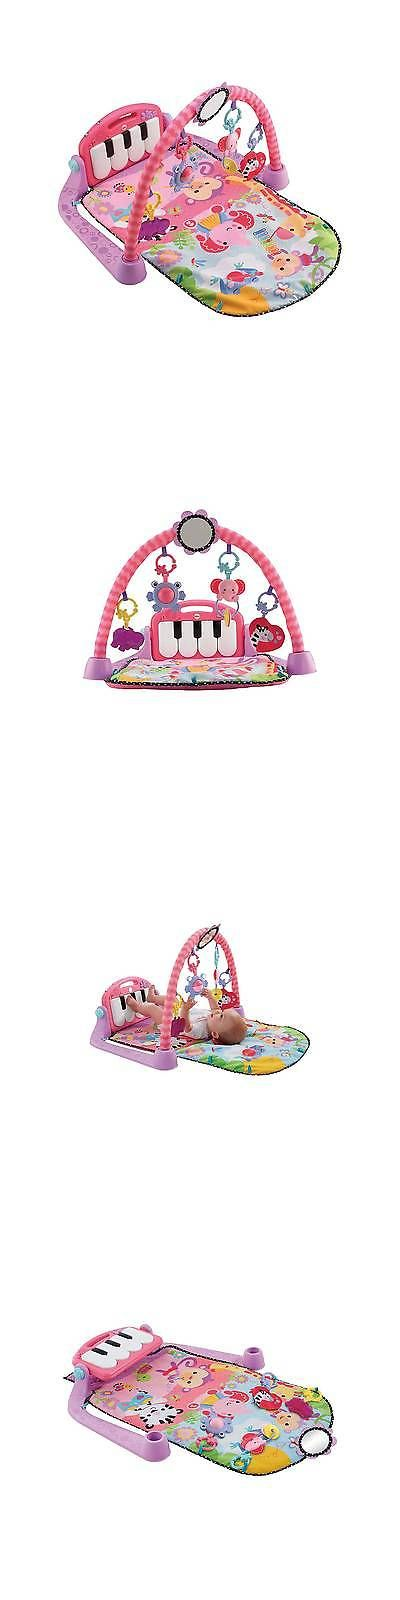 Baby Gear 100223: Fisher-Price Kick N Play Piano Gym - Pink -> BUY IT NOW ONLY: $49.99 on eBay!